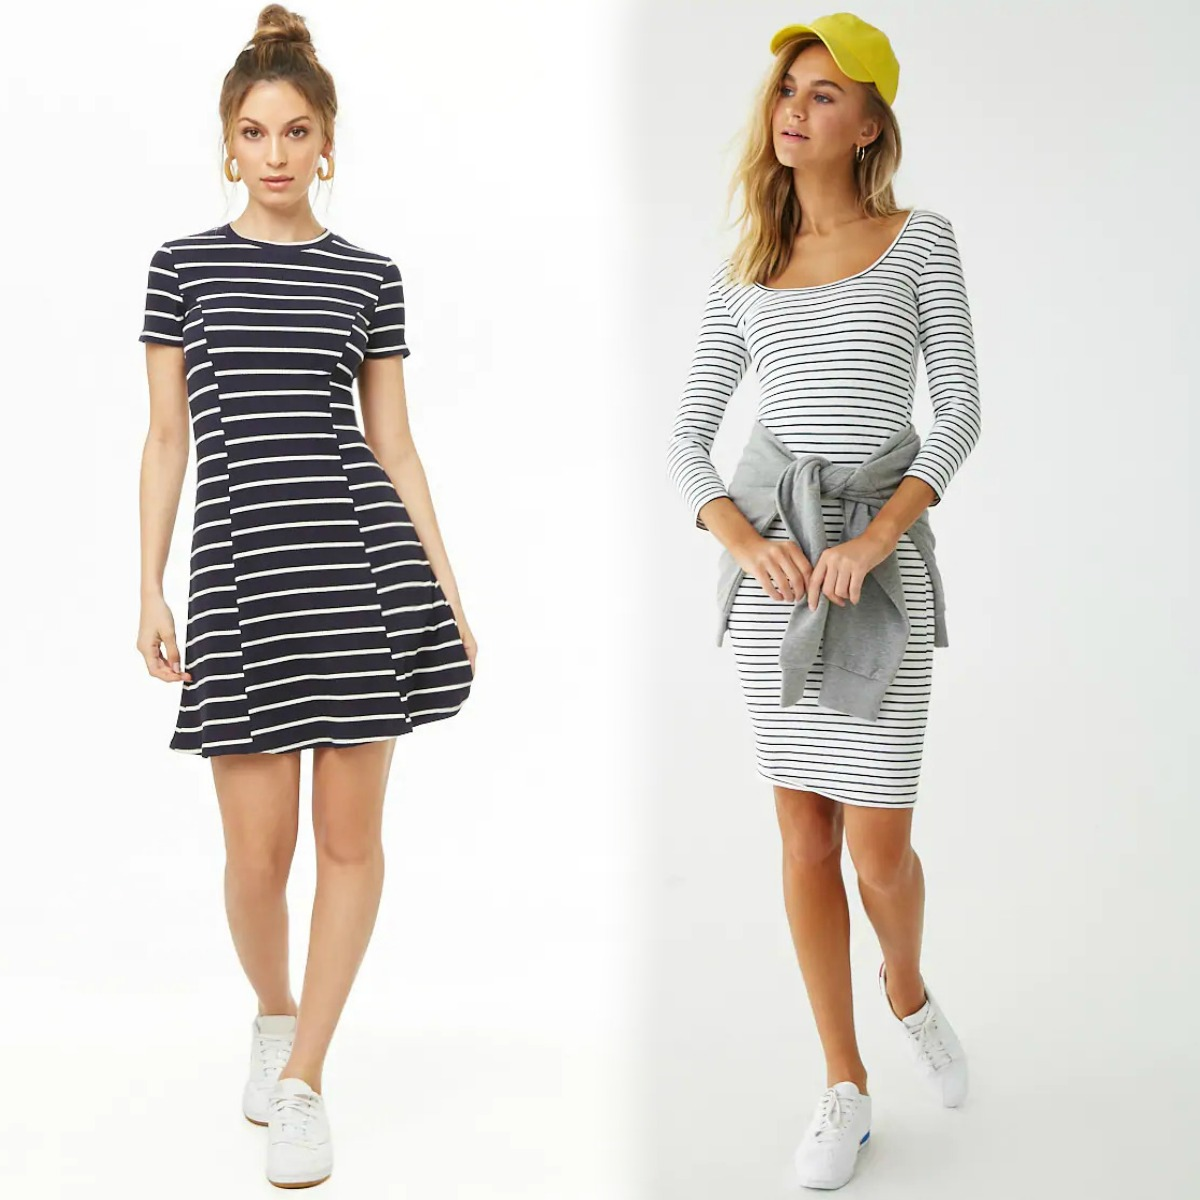 Two women wearing two different styles of Forever 21 dresses